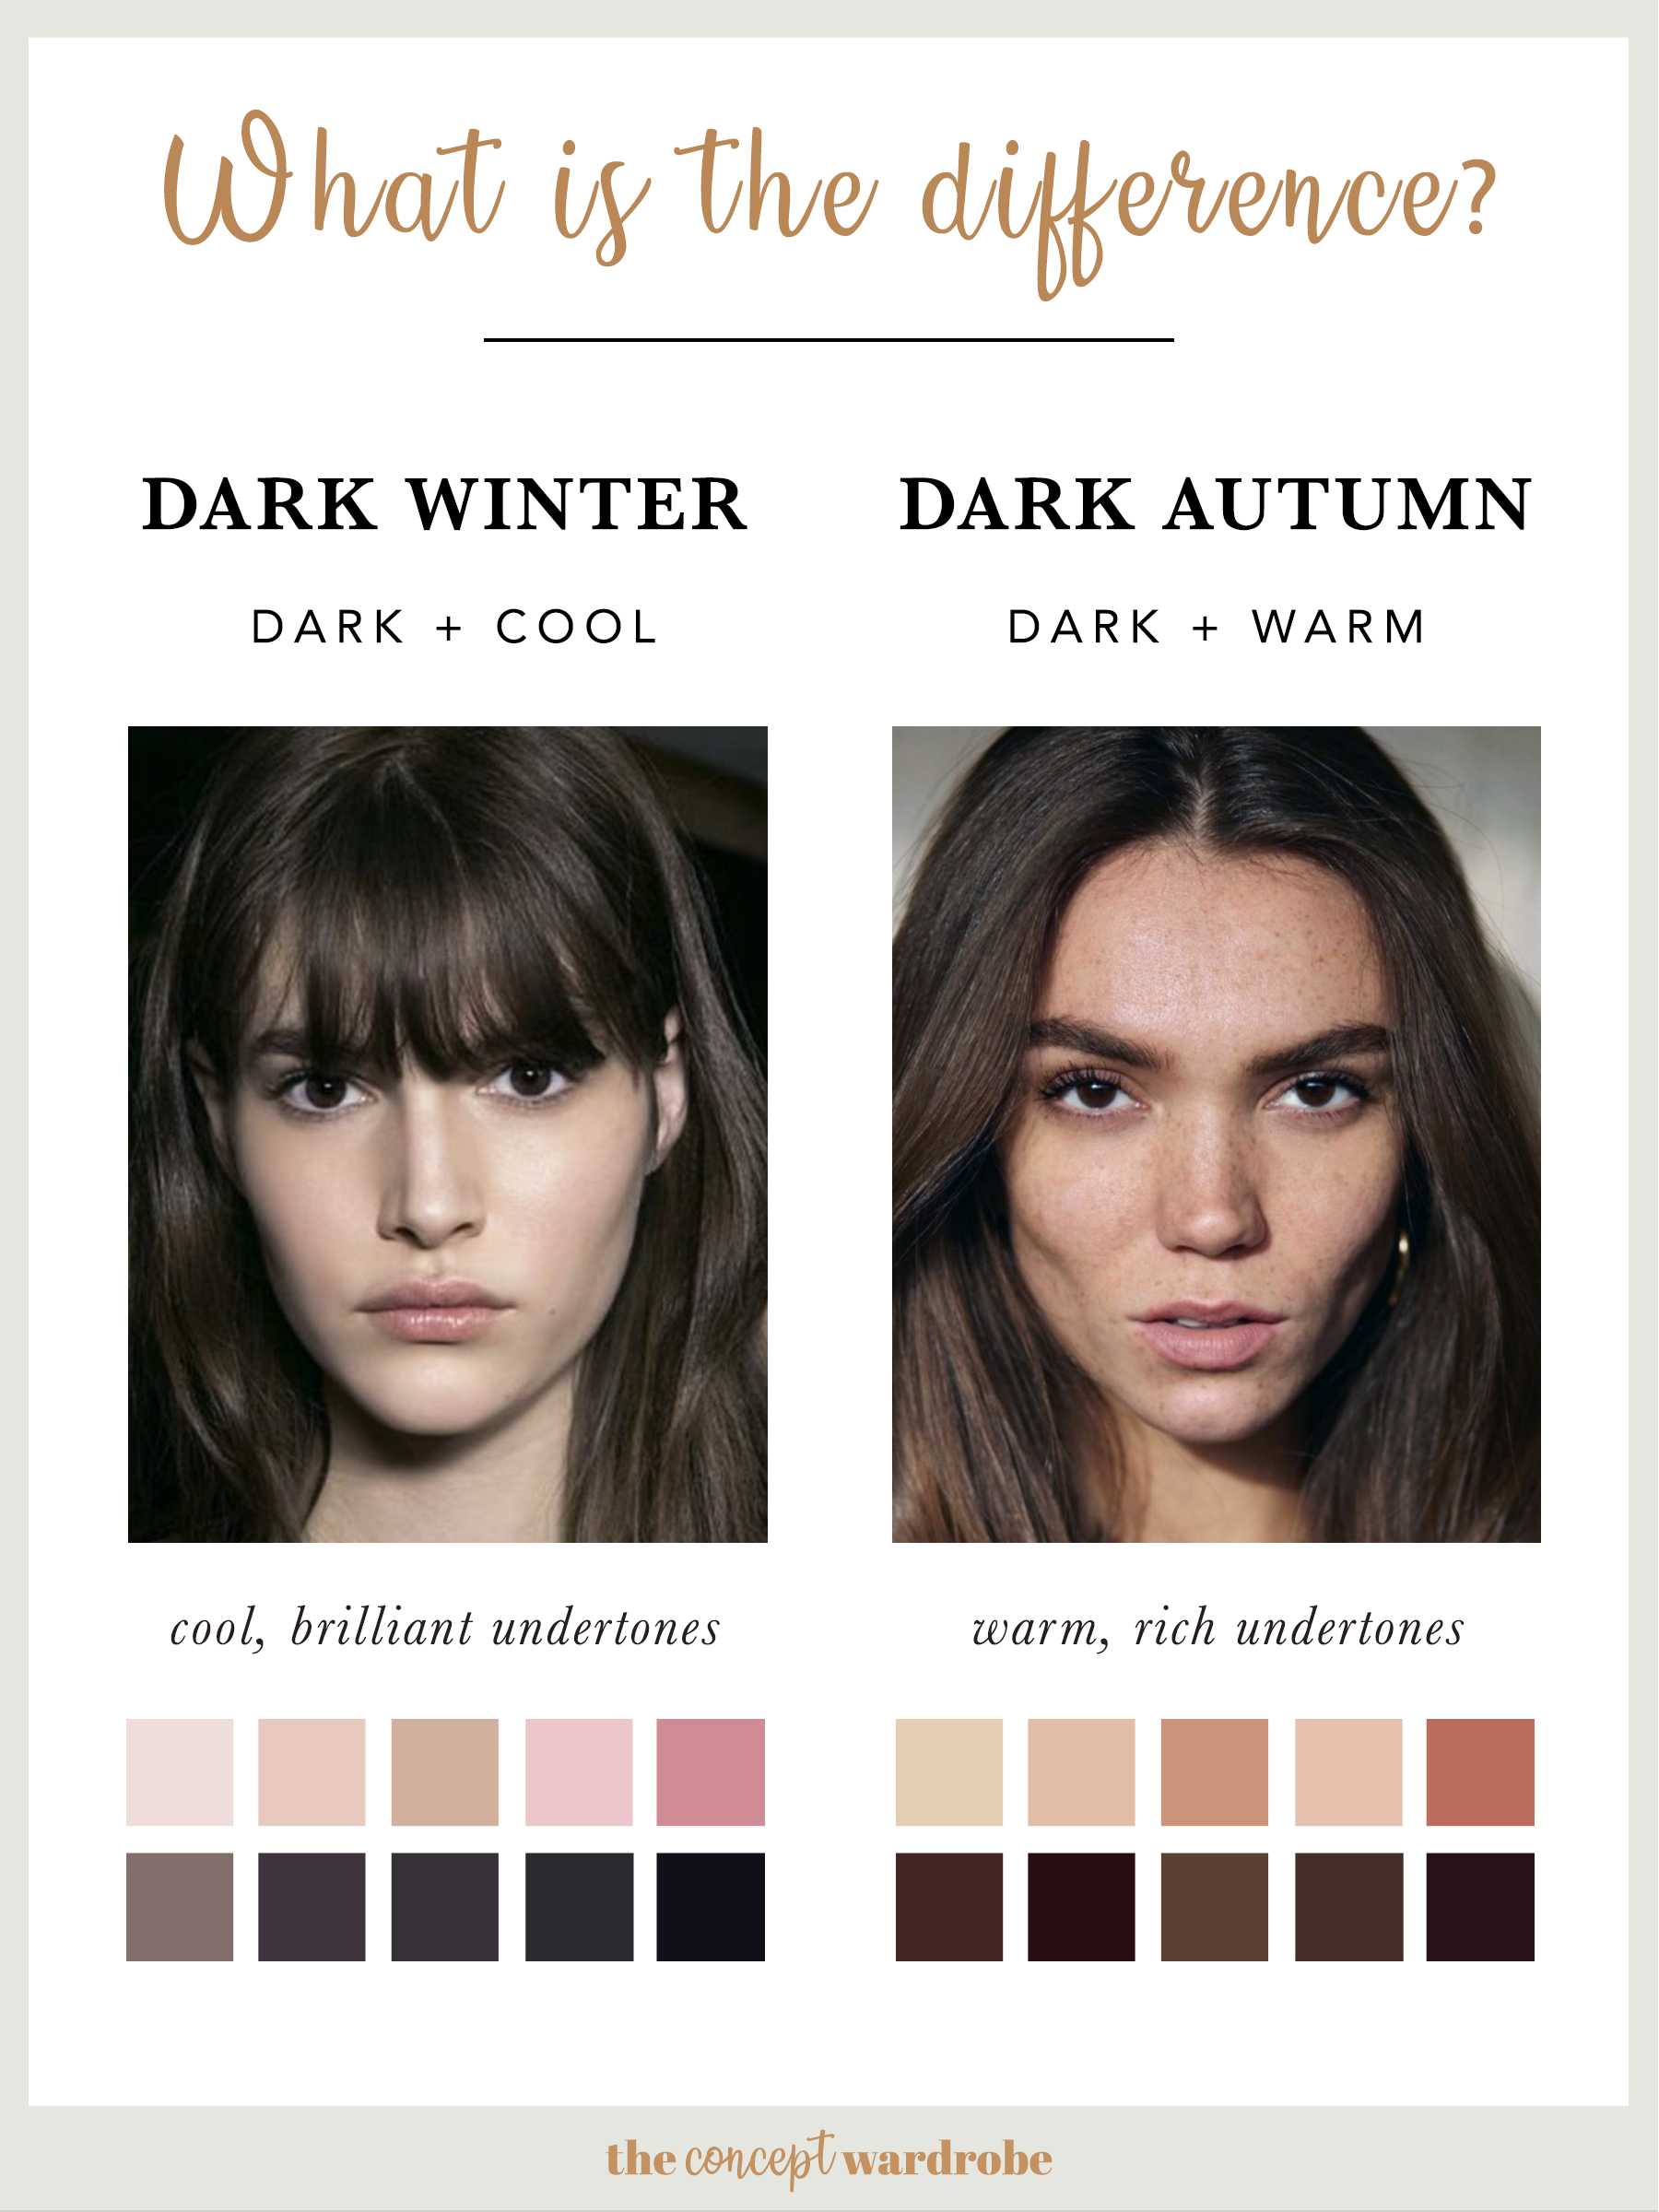 What is the difference between Dark and Dark Autumn?